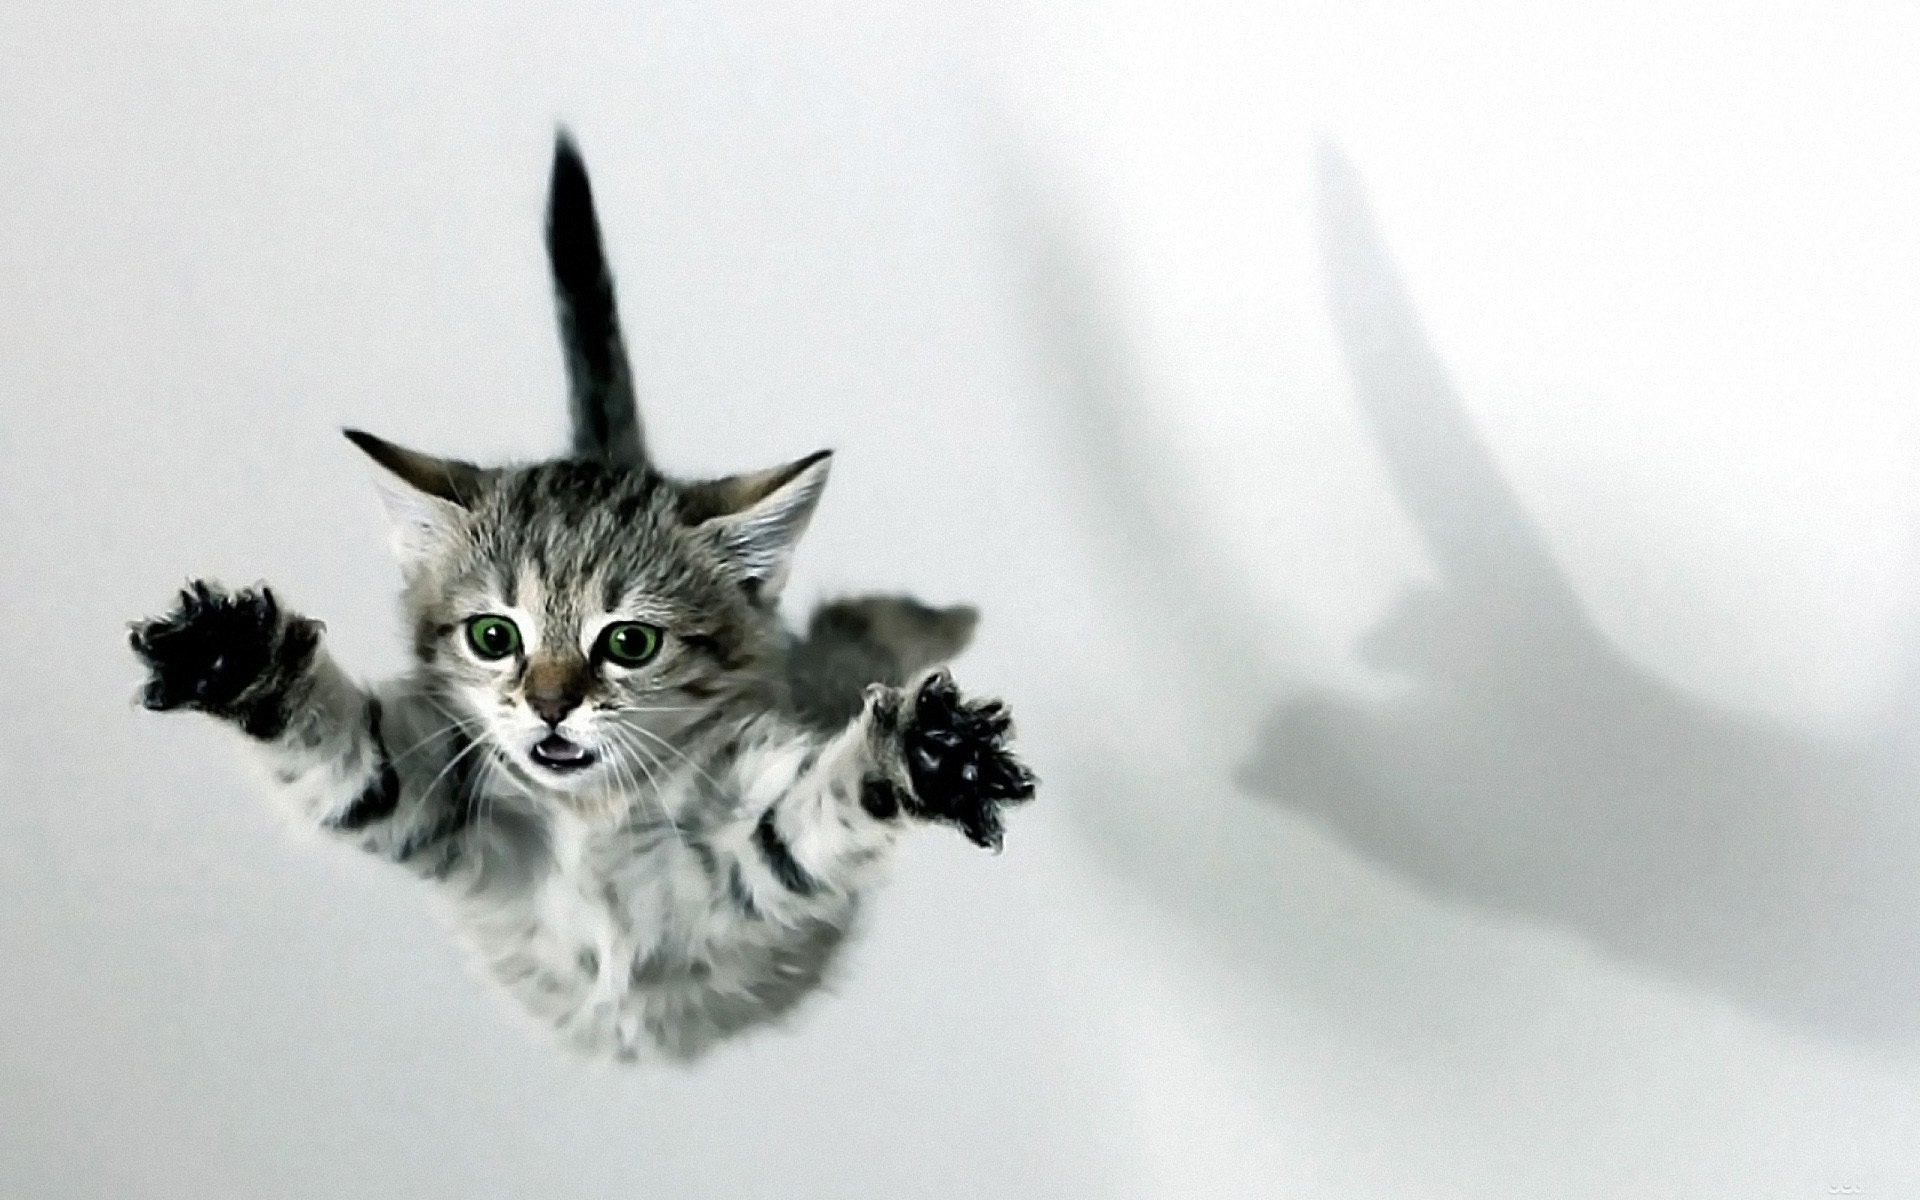 Animal - Cat  Kitten Animal Falling Wallpaper